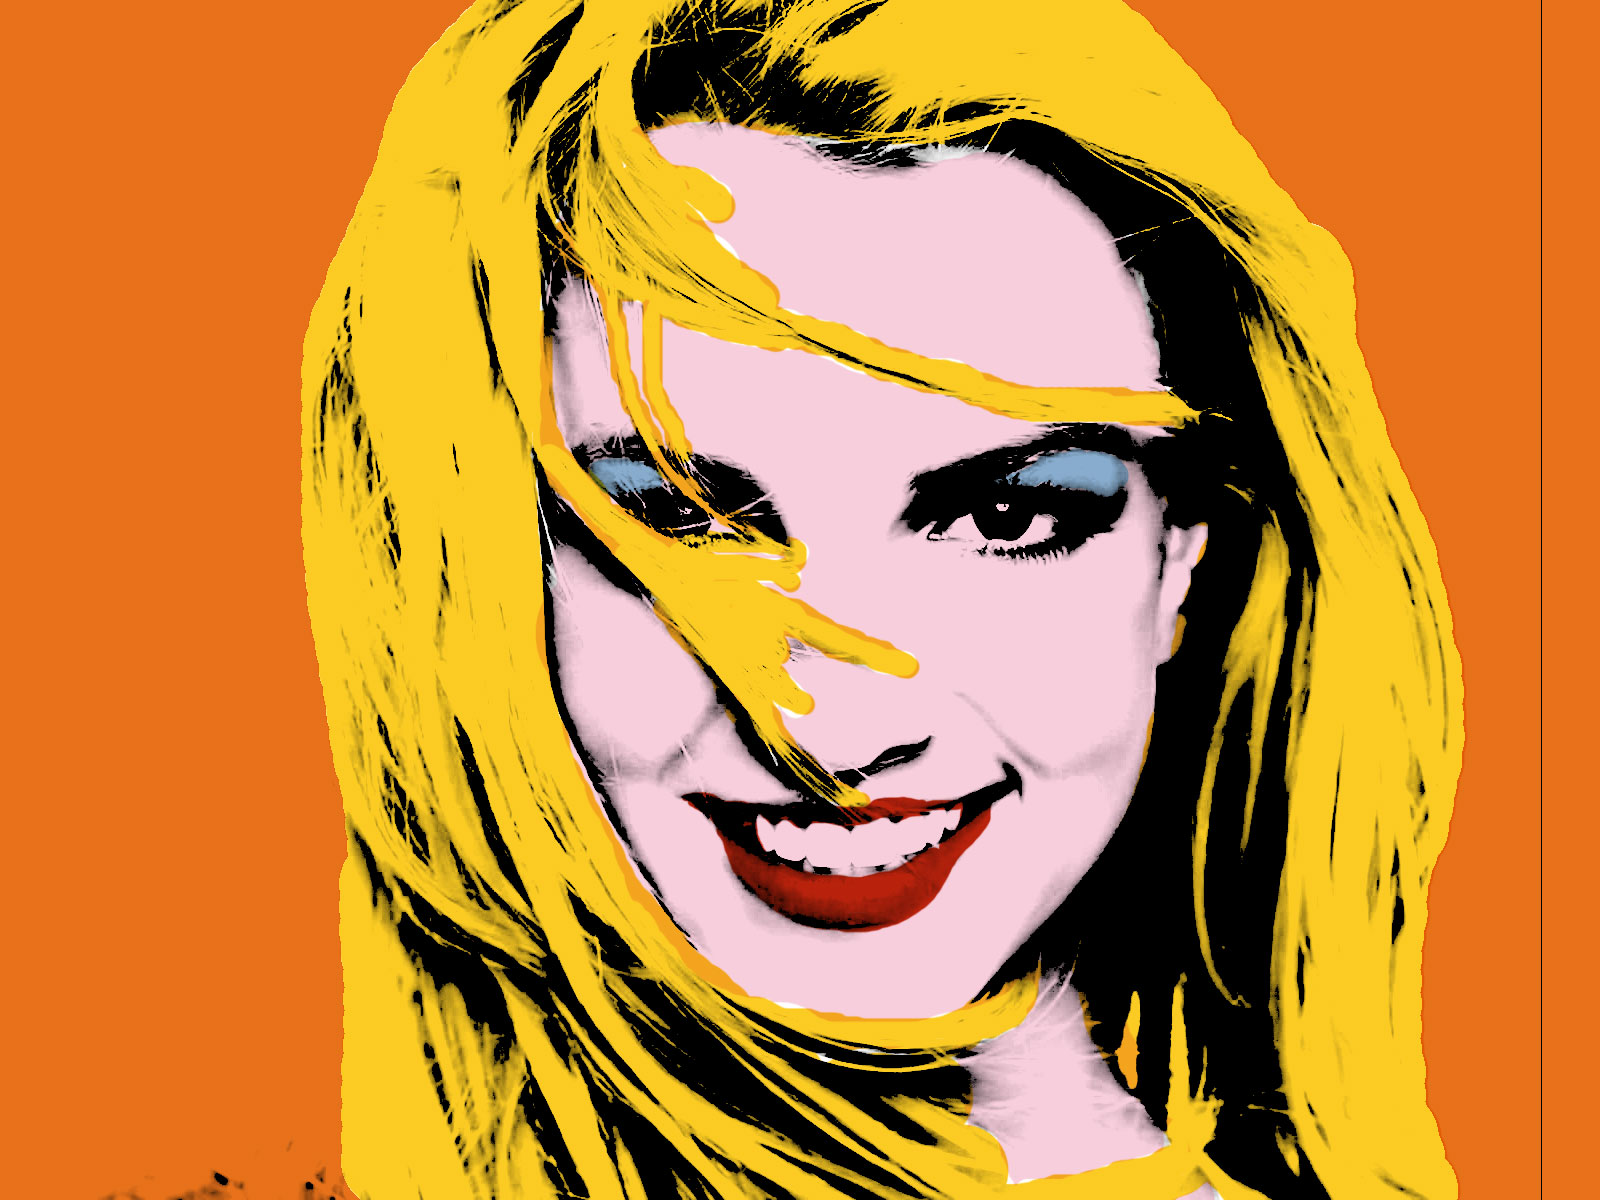 Andy Warhol Pop Art Paintings Pop art andy warhol 36